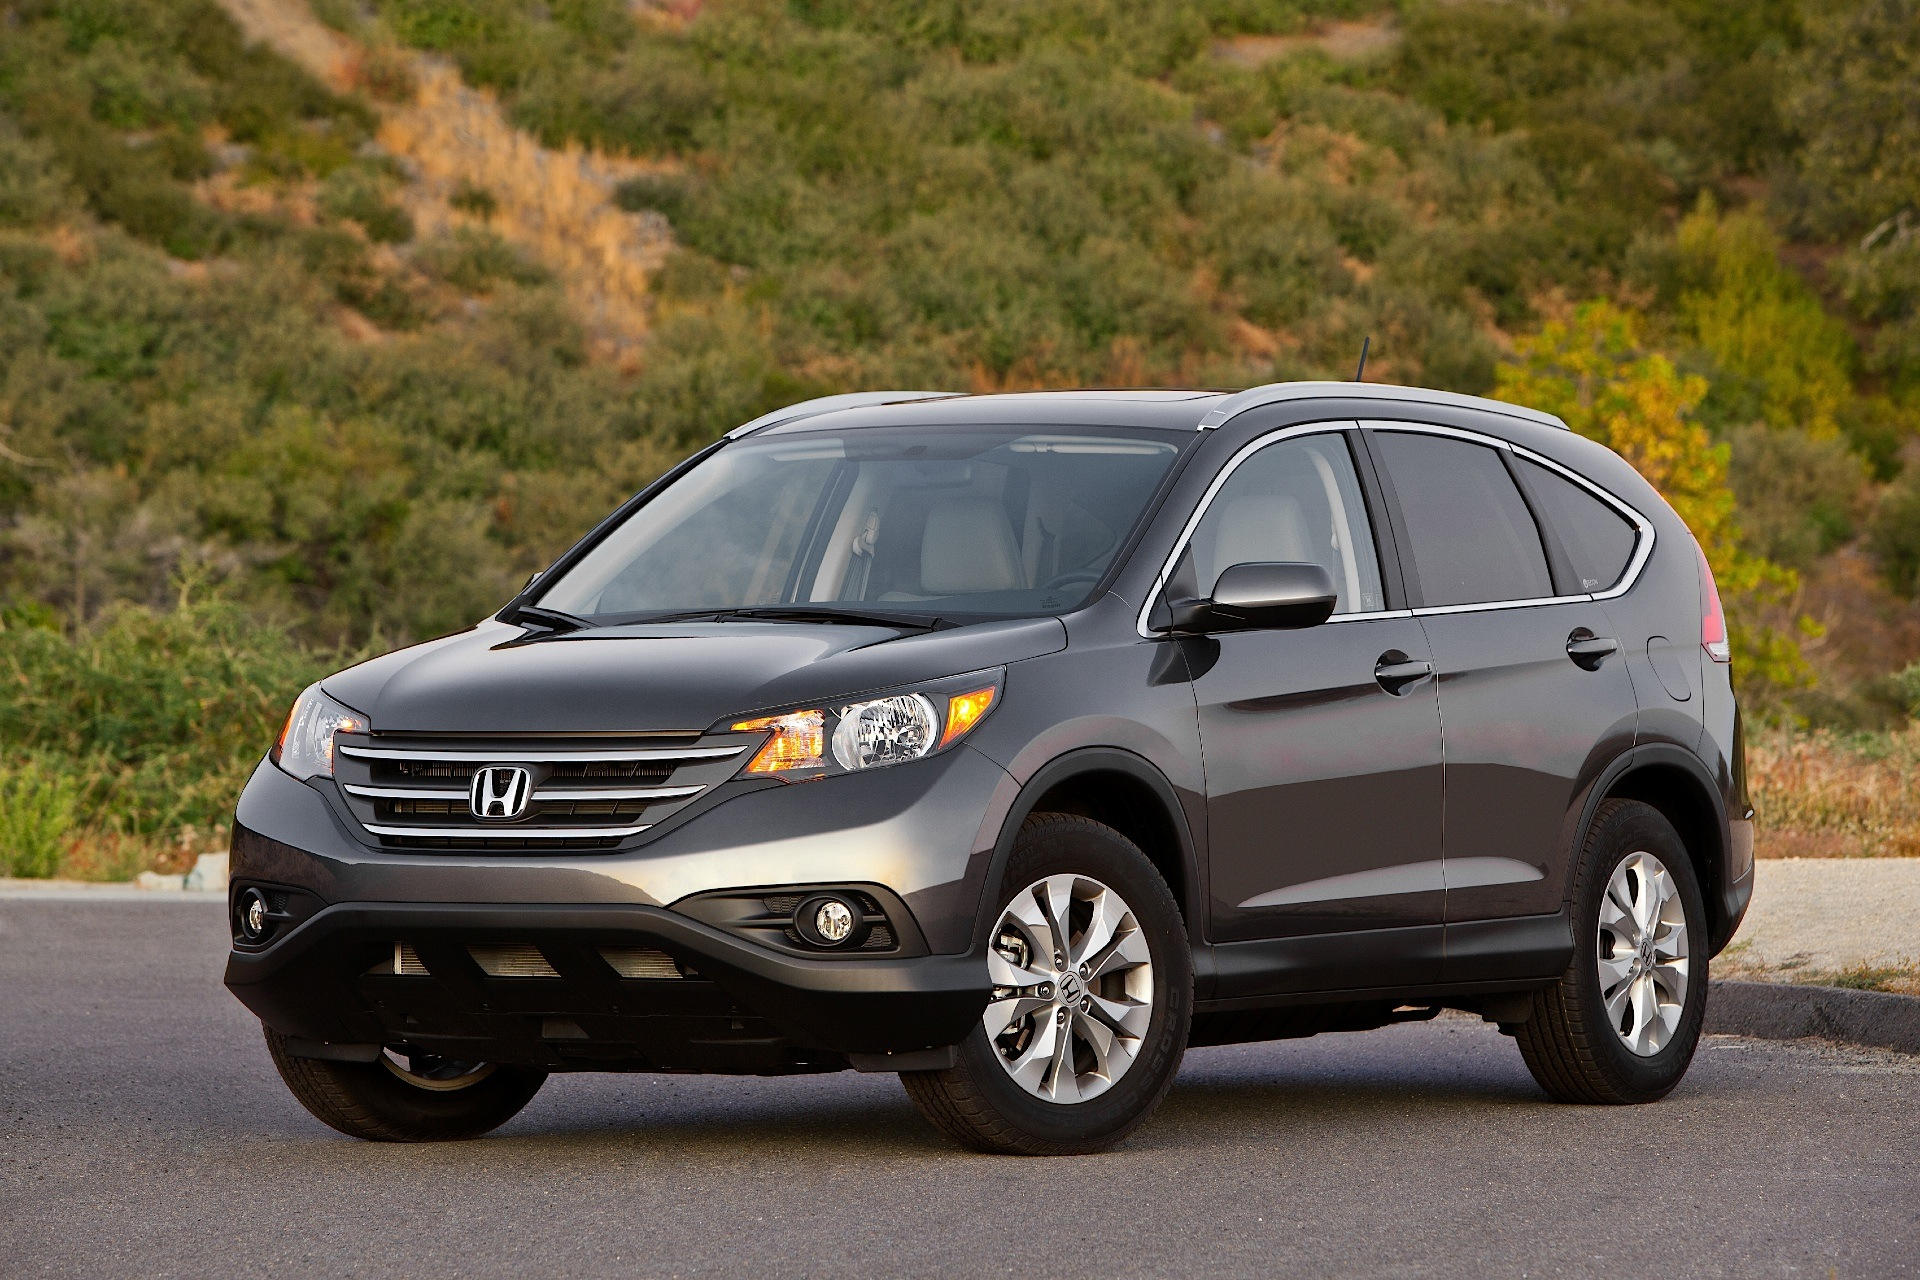 Honda CR-V 2.4 2012 photo - 6